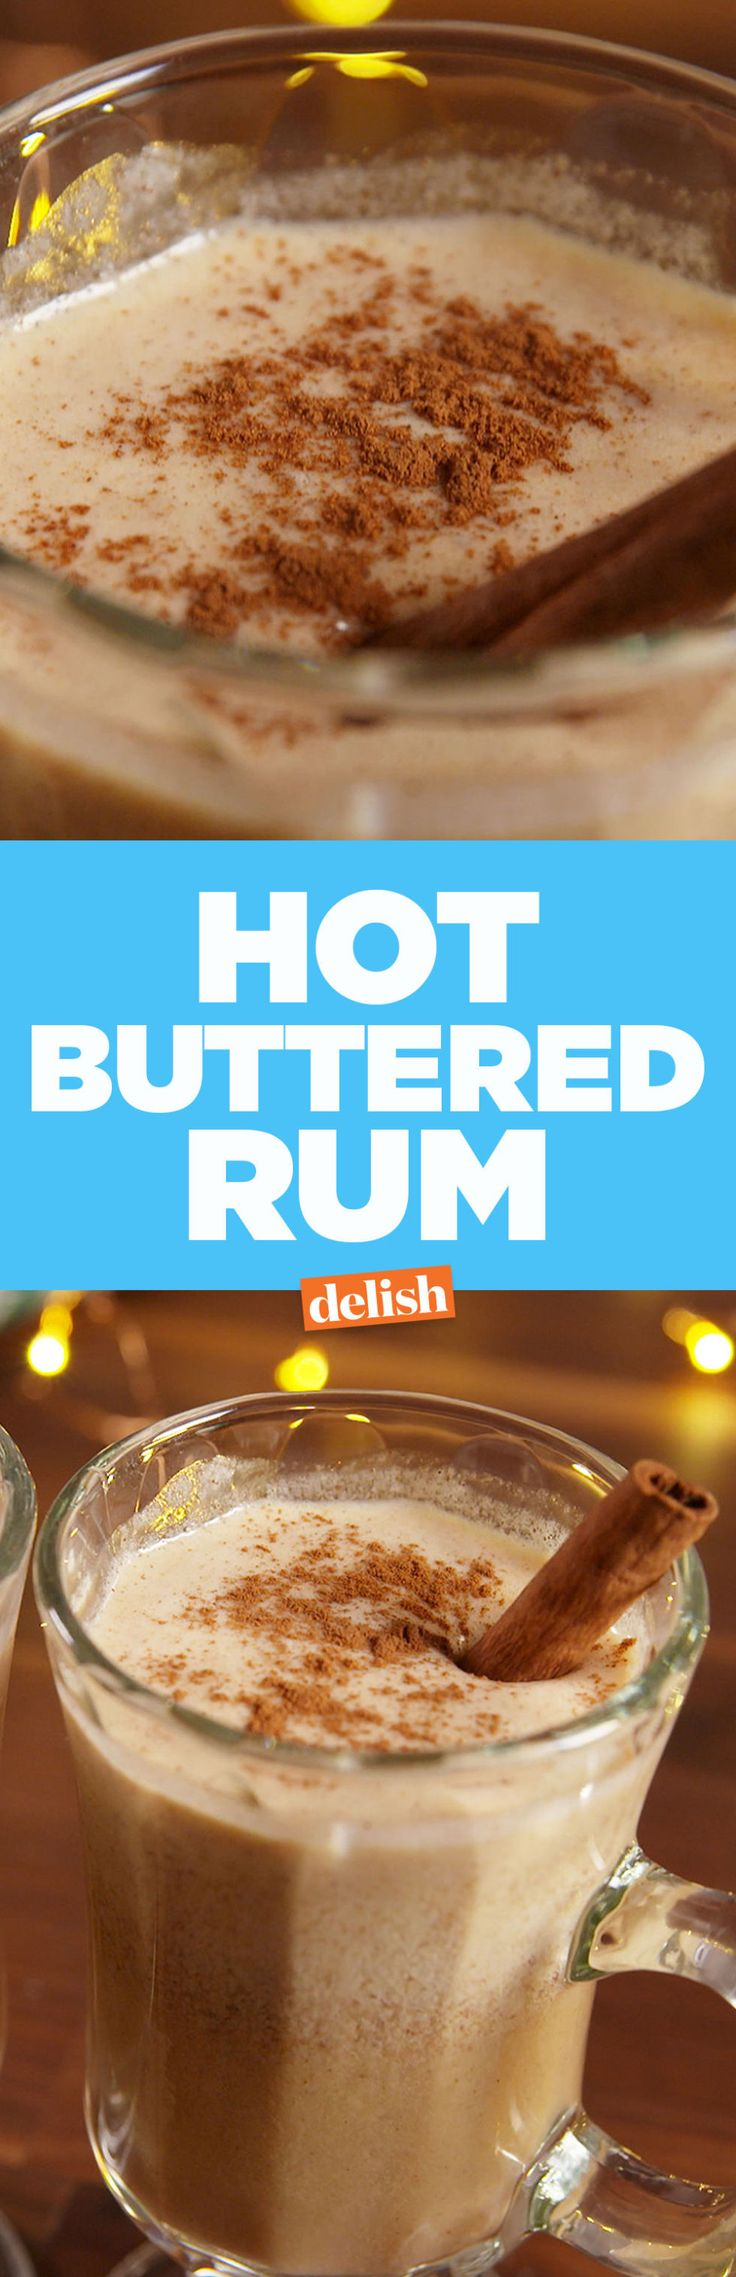 There's A Trick To Making Unbelievably Addictive Hot Buttered Rum